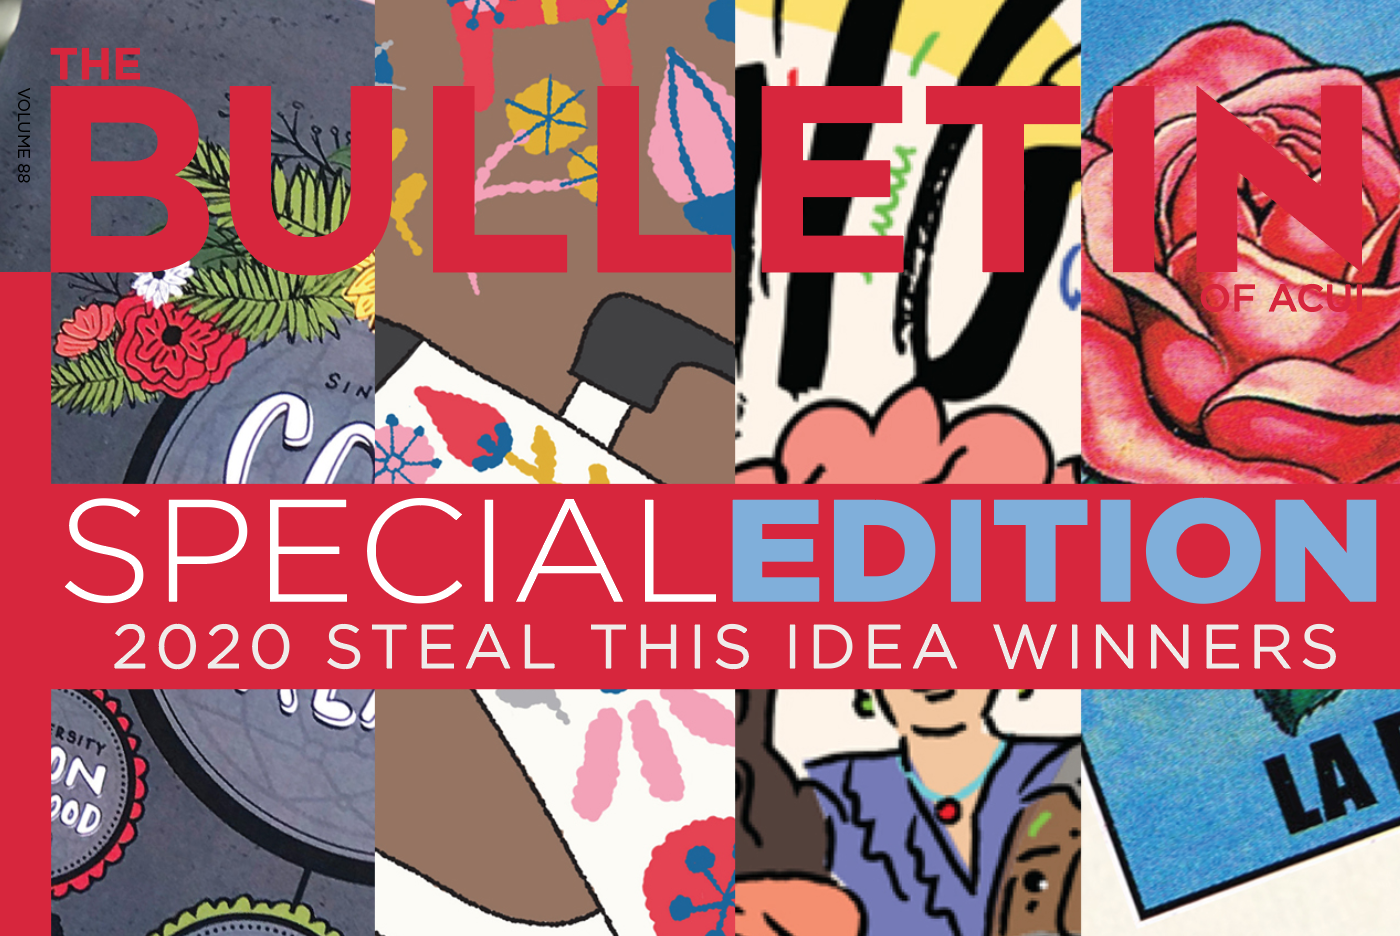 Special Edition: 2020 Steal This Idea Winners Announced